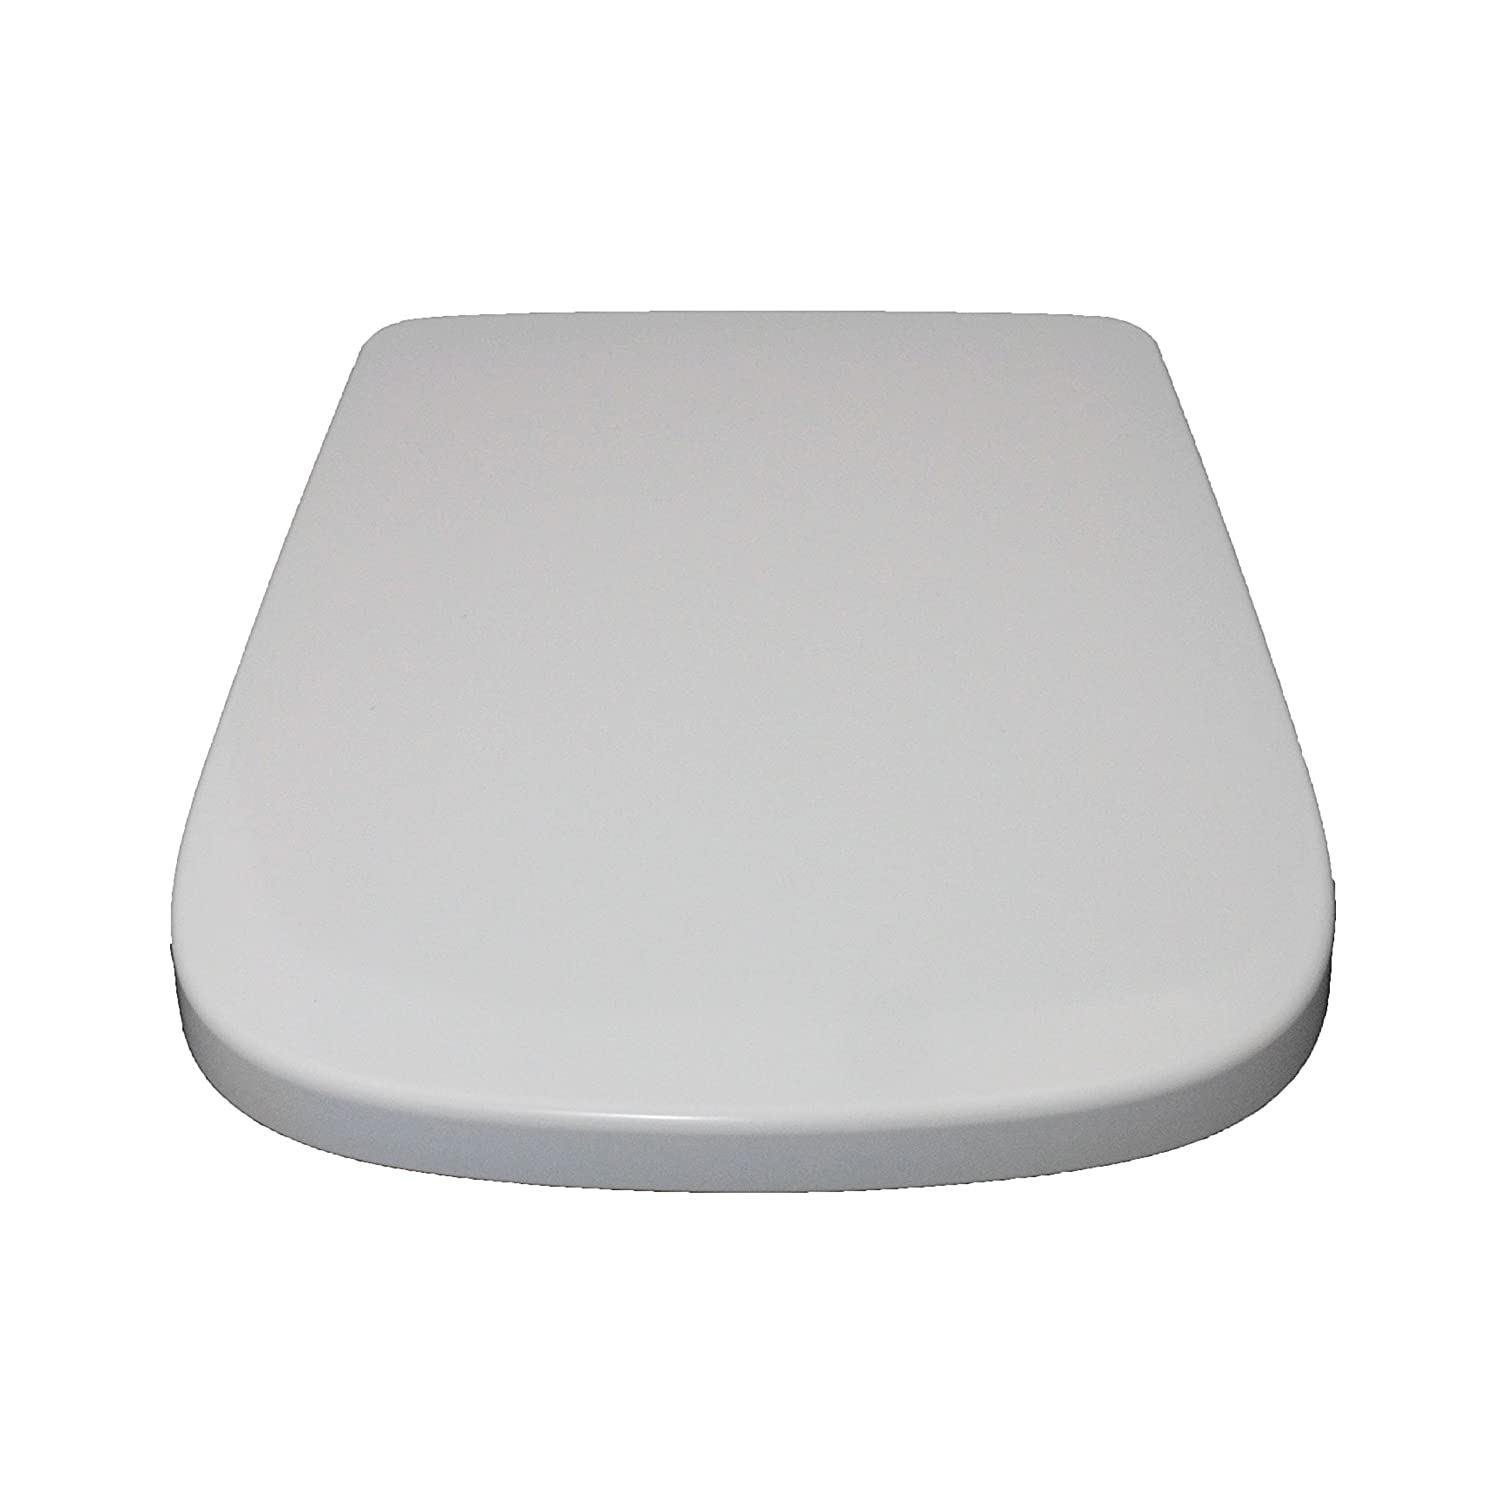 Home Standard® White Luxury D-Shape Quick Release Soft Close Toilet Seat | Squared Edges | Top Fix & Easy Clean